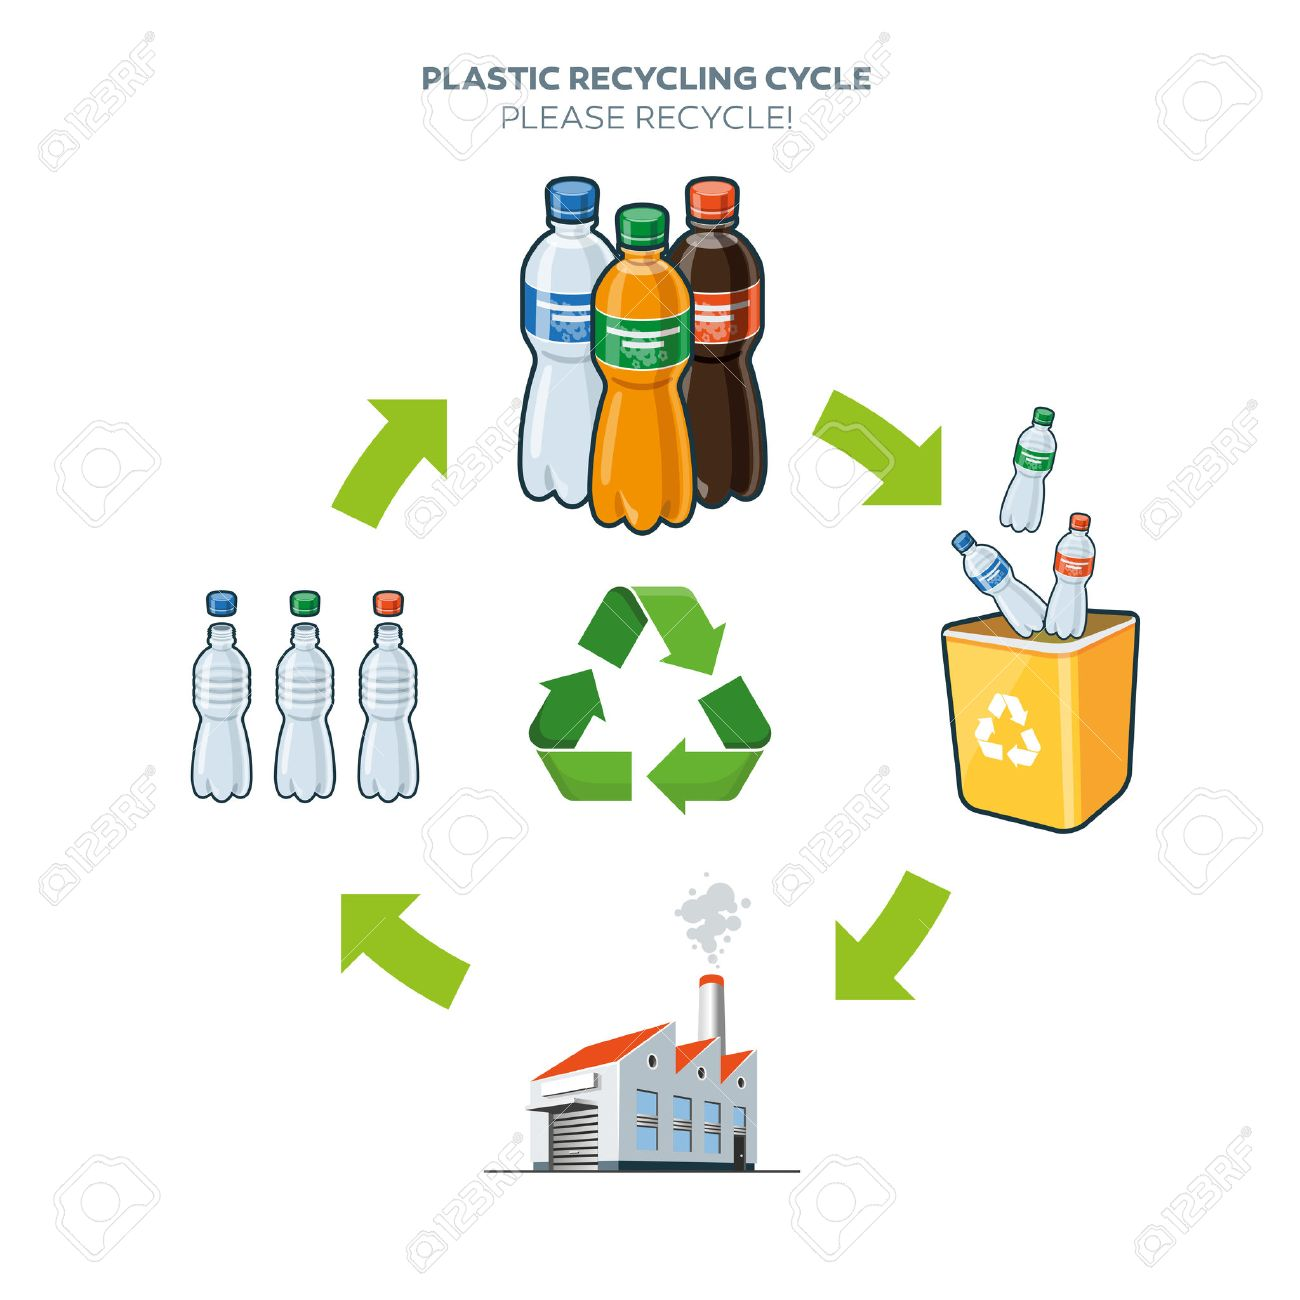 Image result for recycle bottle cycle